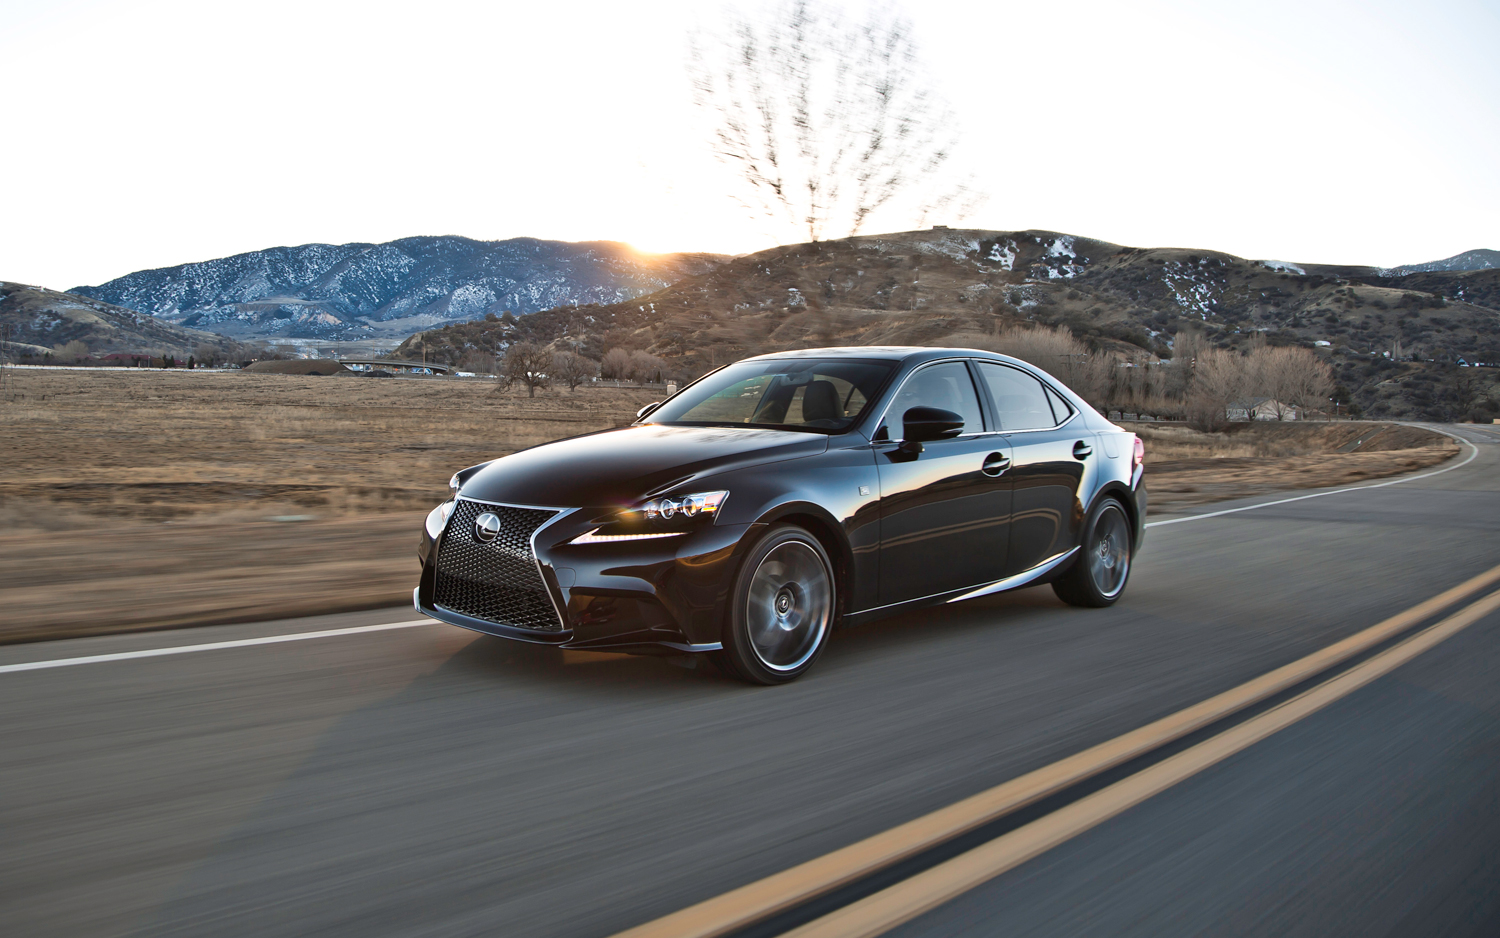 2014 Lexus Is F #18